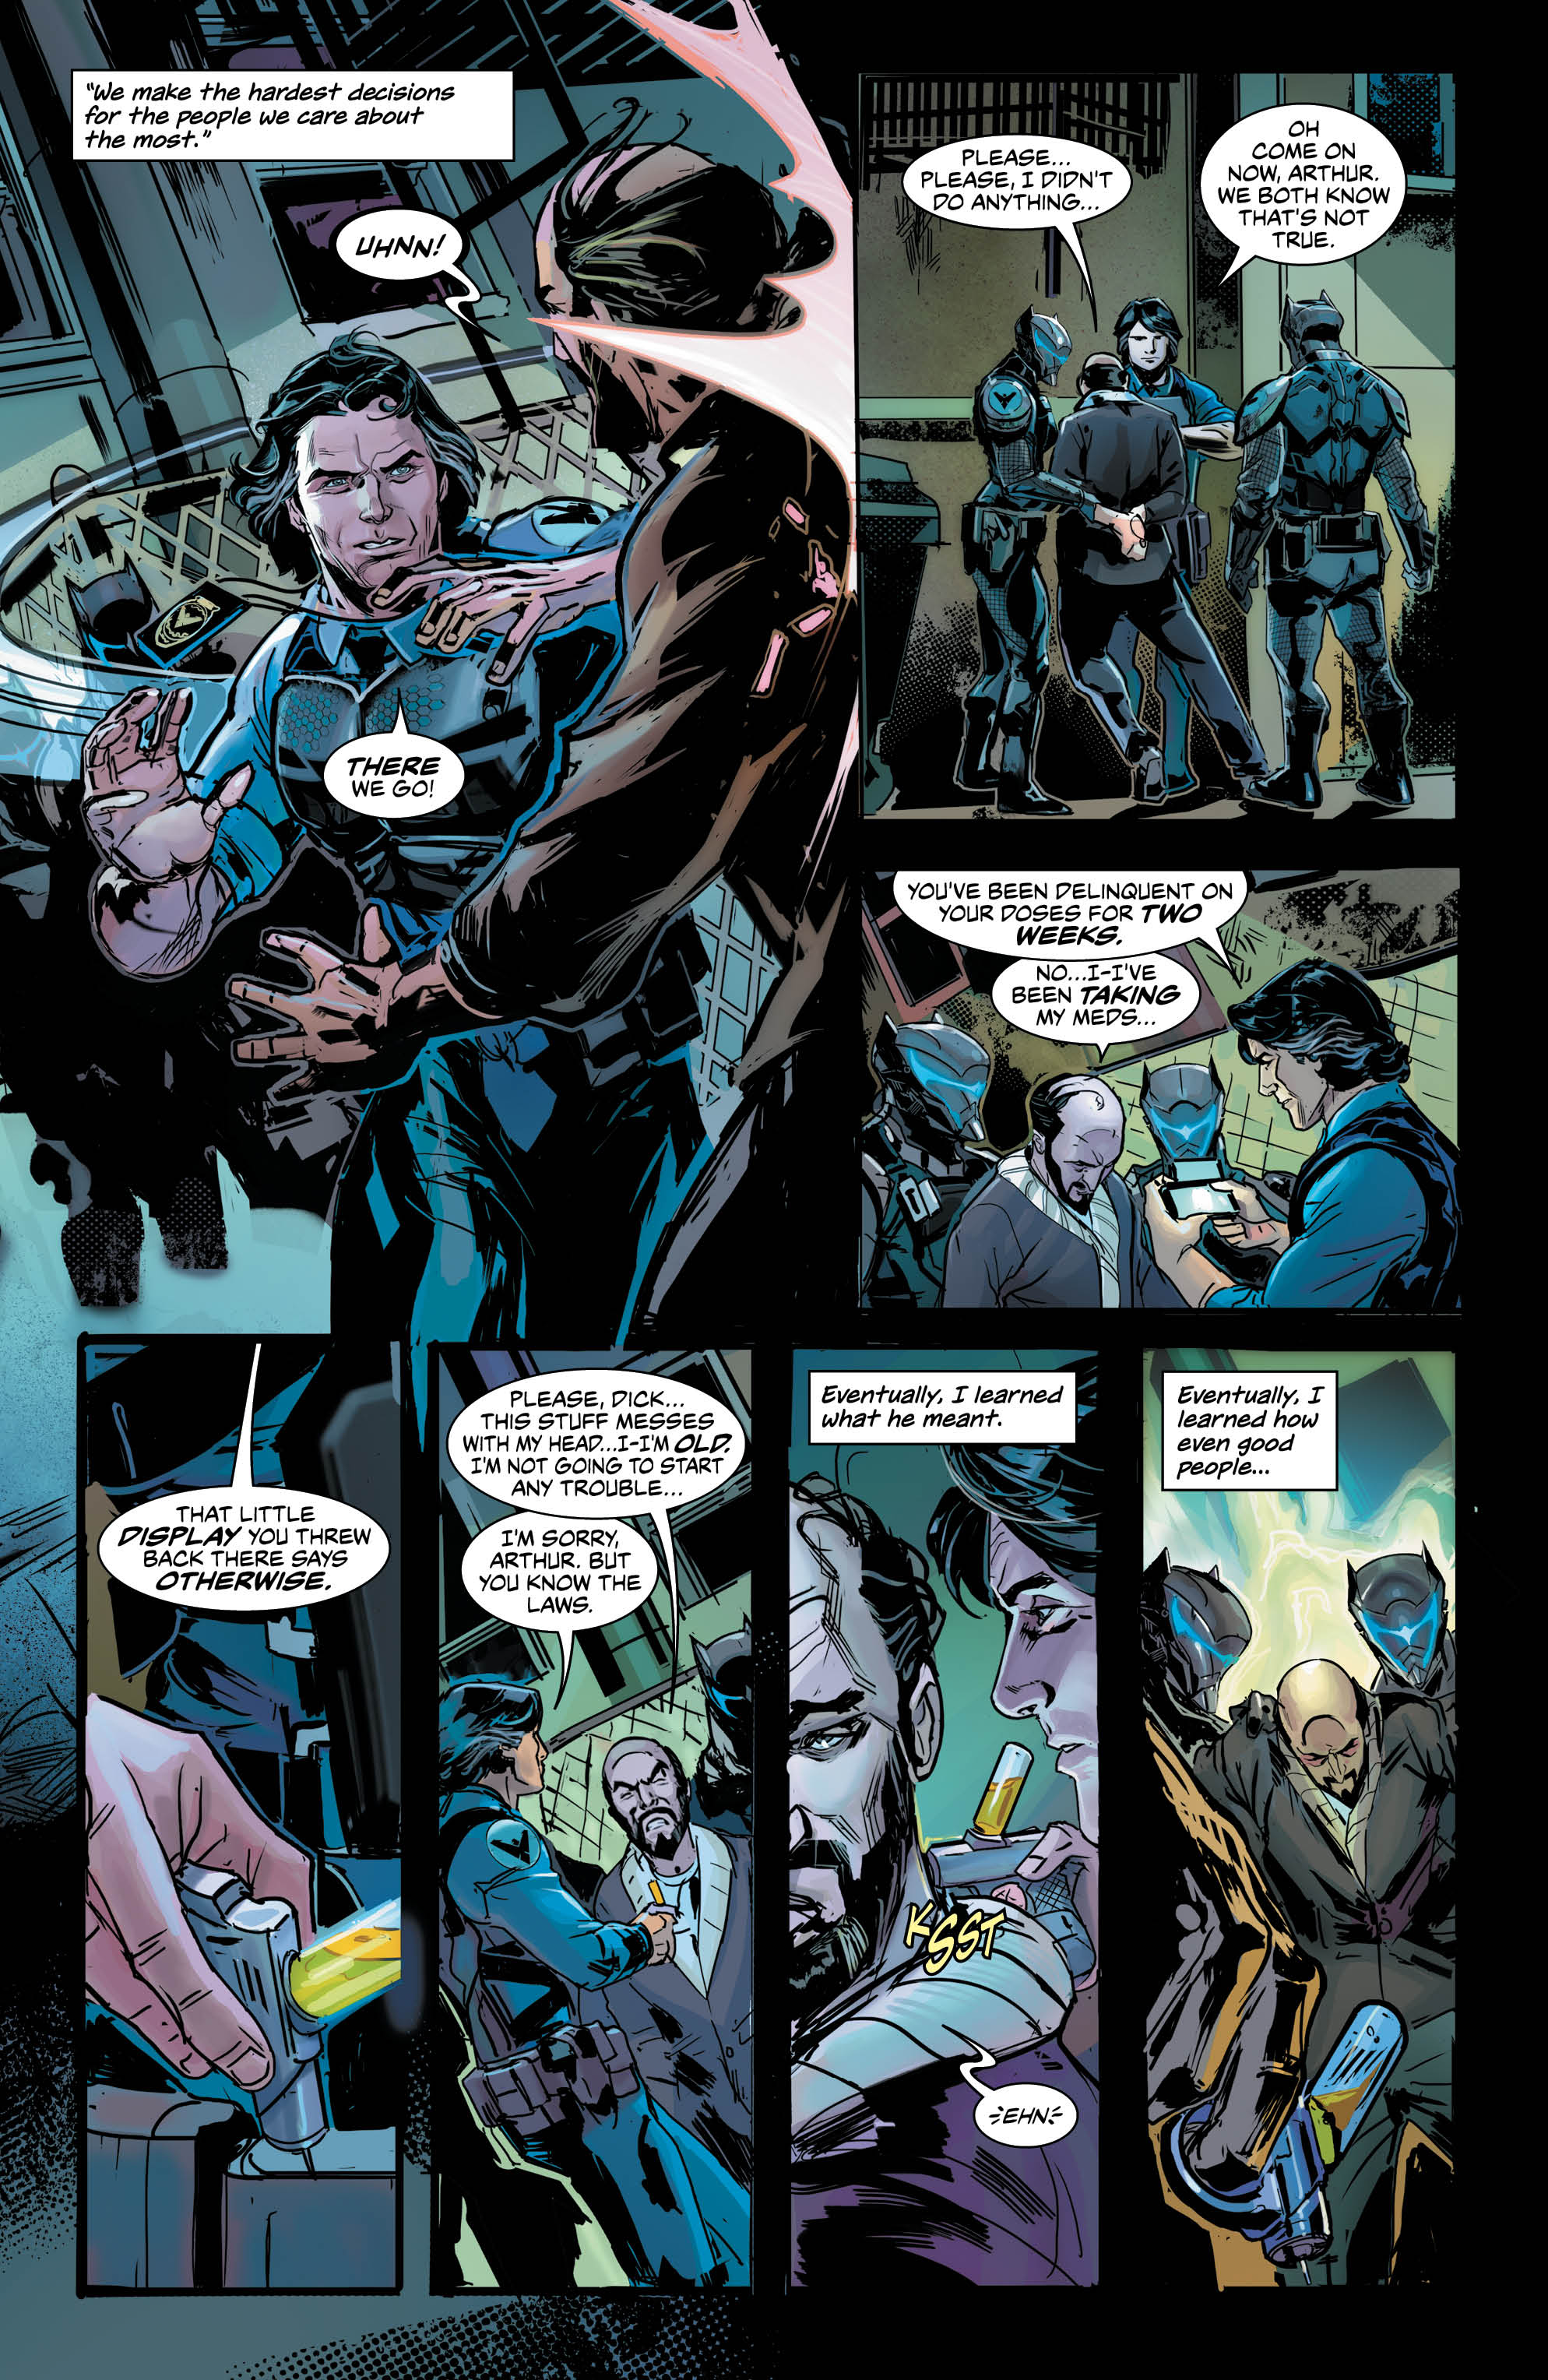 'Nightwing: The New Order' #1. Art by Trevor McCarthy and Dean White/DC Comics